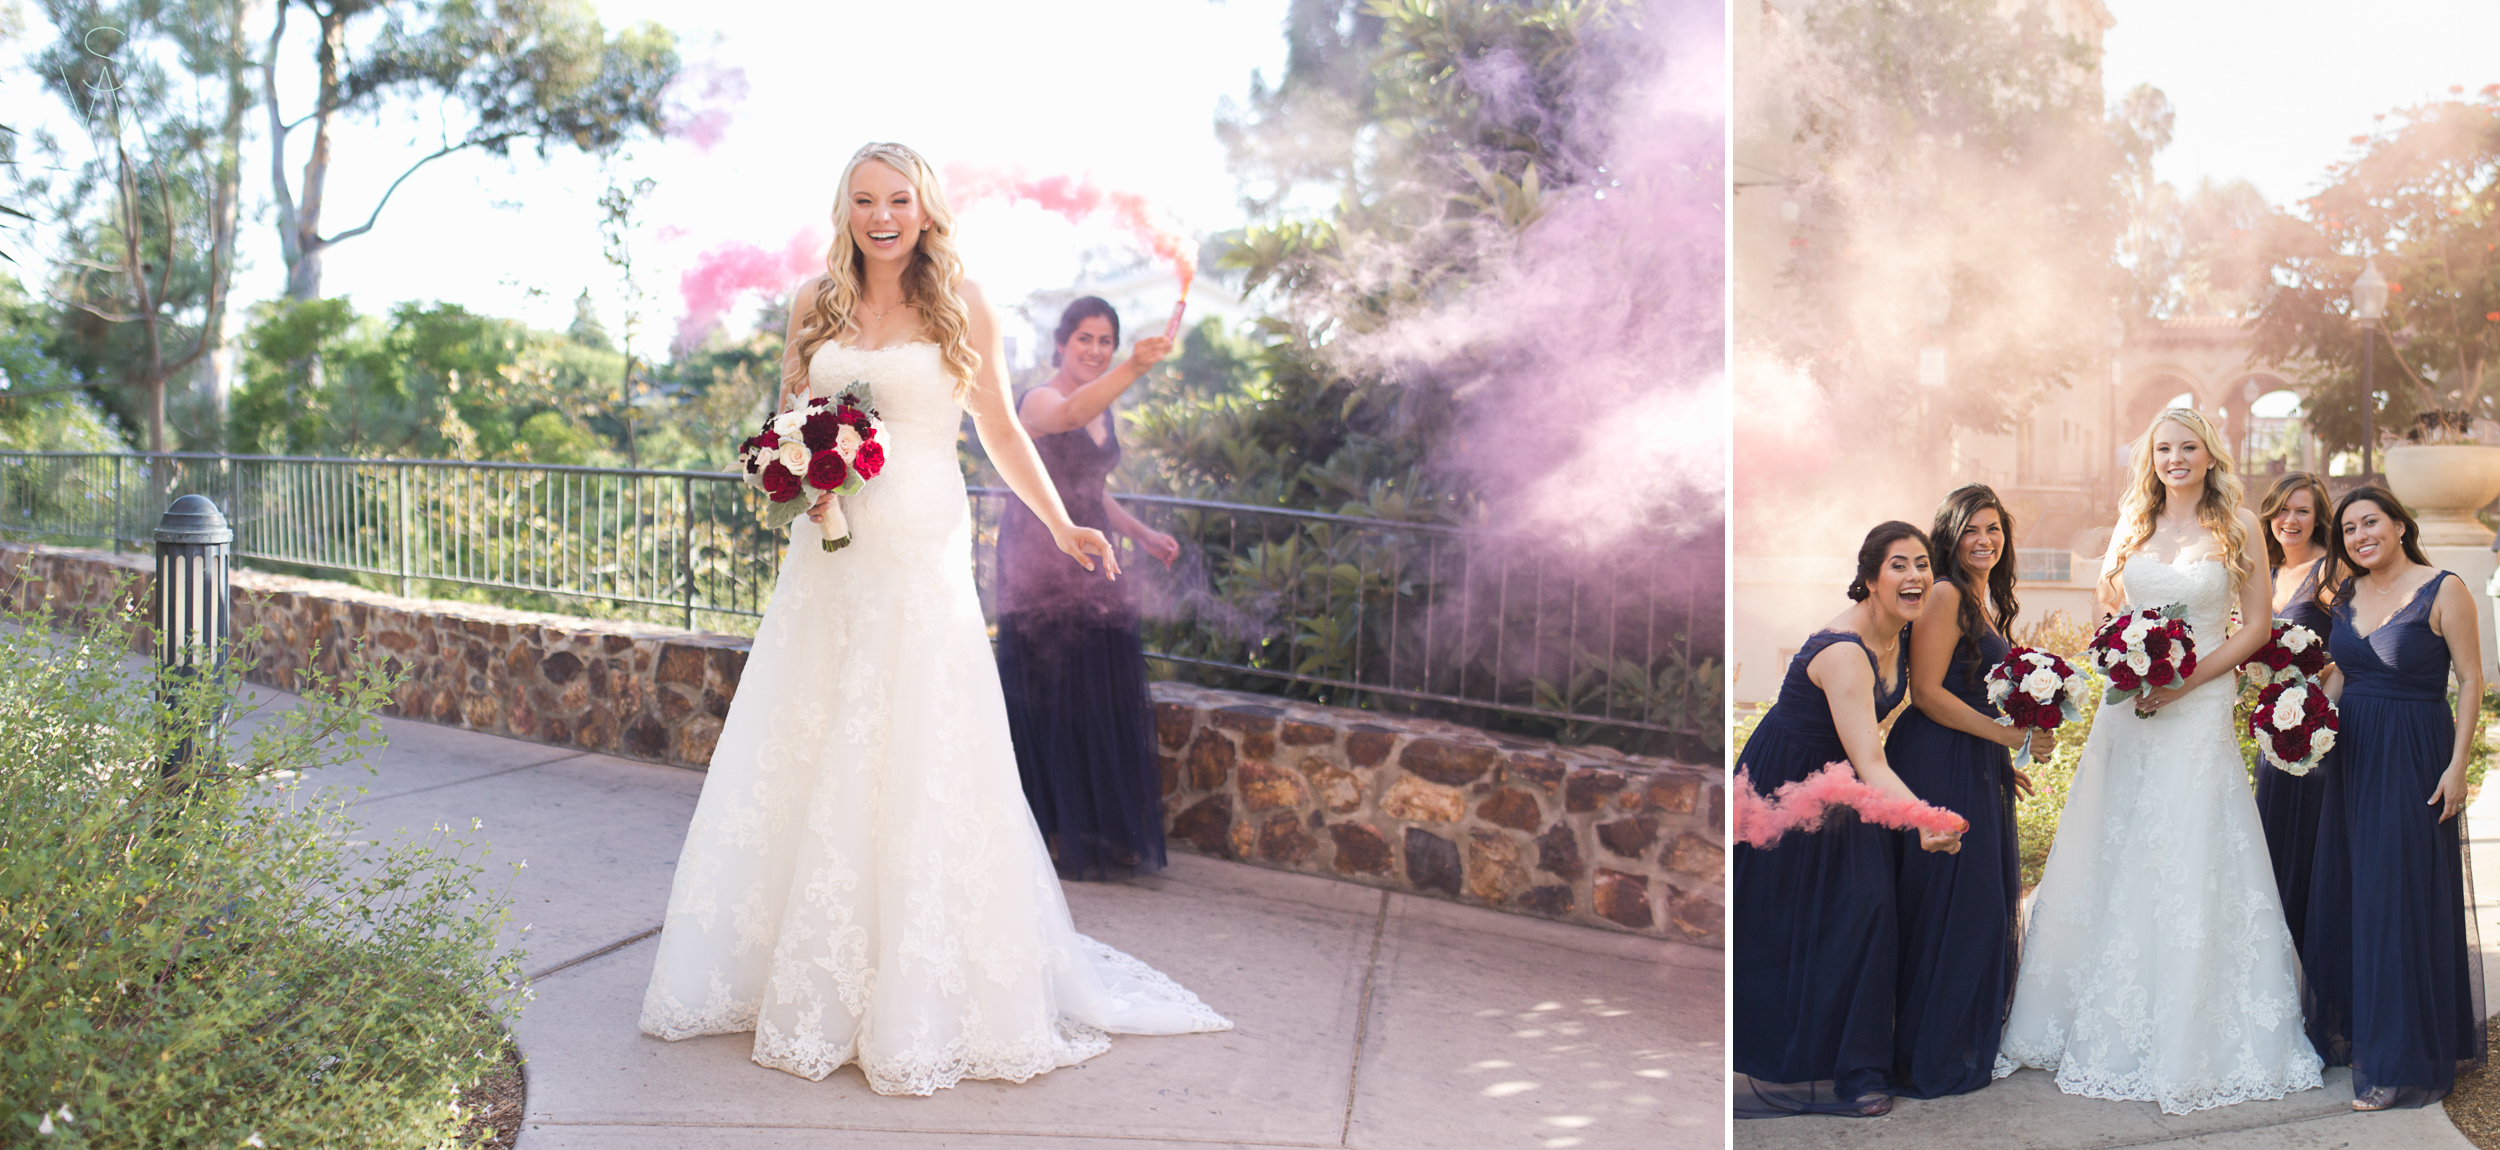 124Prado.smoke.bomb.weddings.shewanders.photography-.jpg